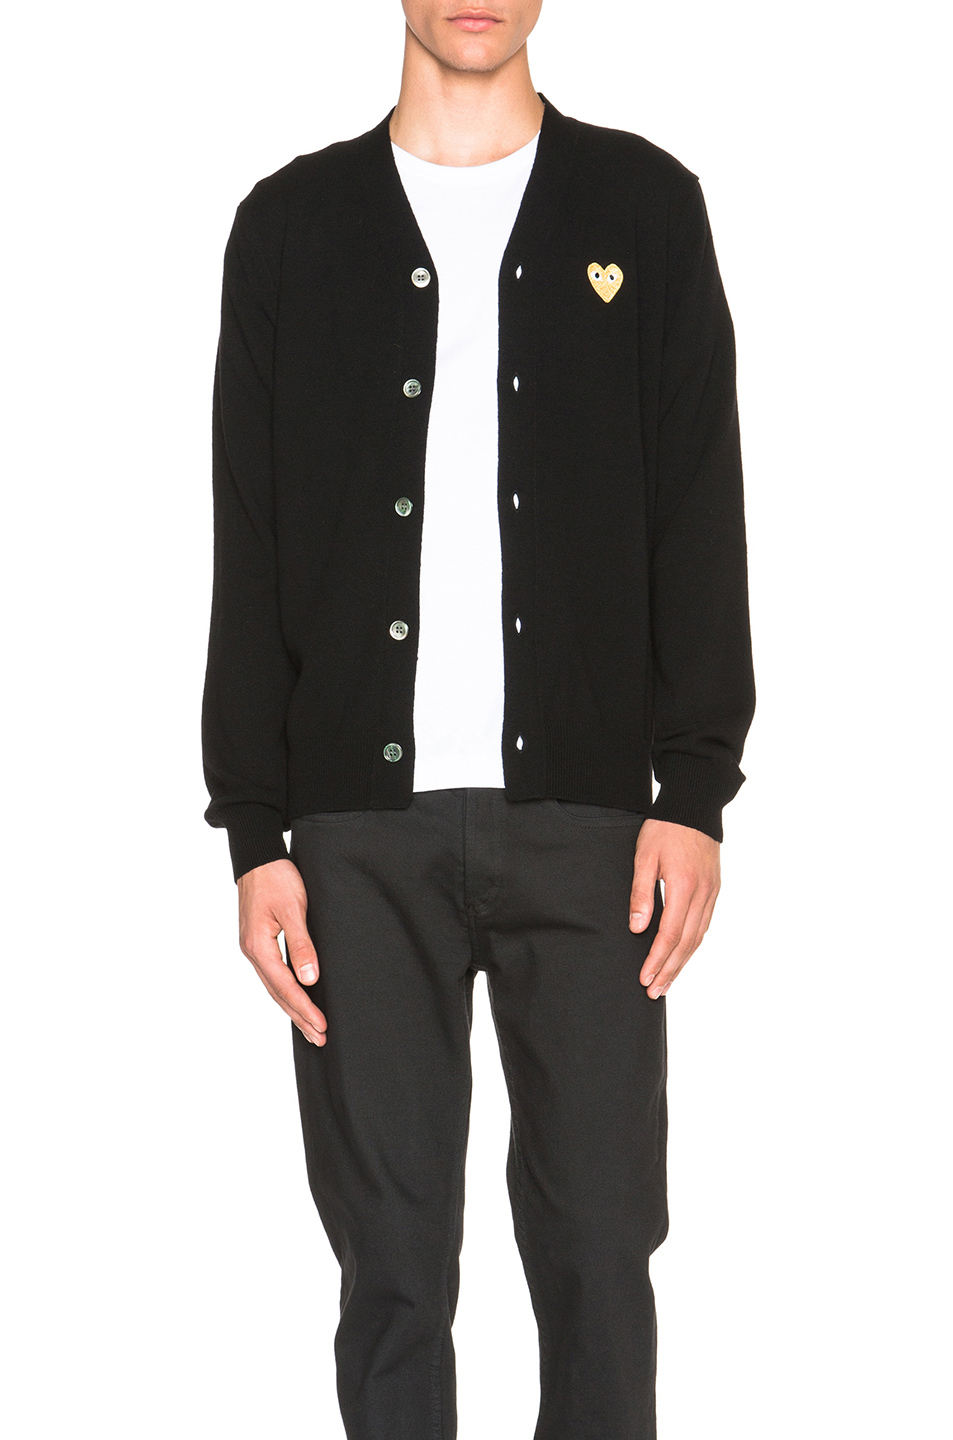 COMME DES GARÇONS PLAY Comme Des Garcons Play Cardigan With Gold Emblem In Blue.  in Black